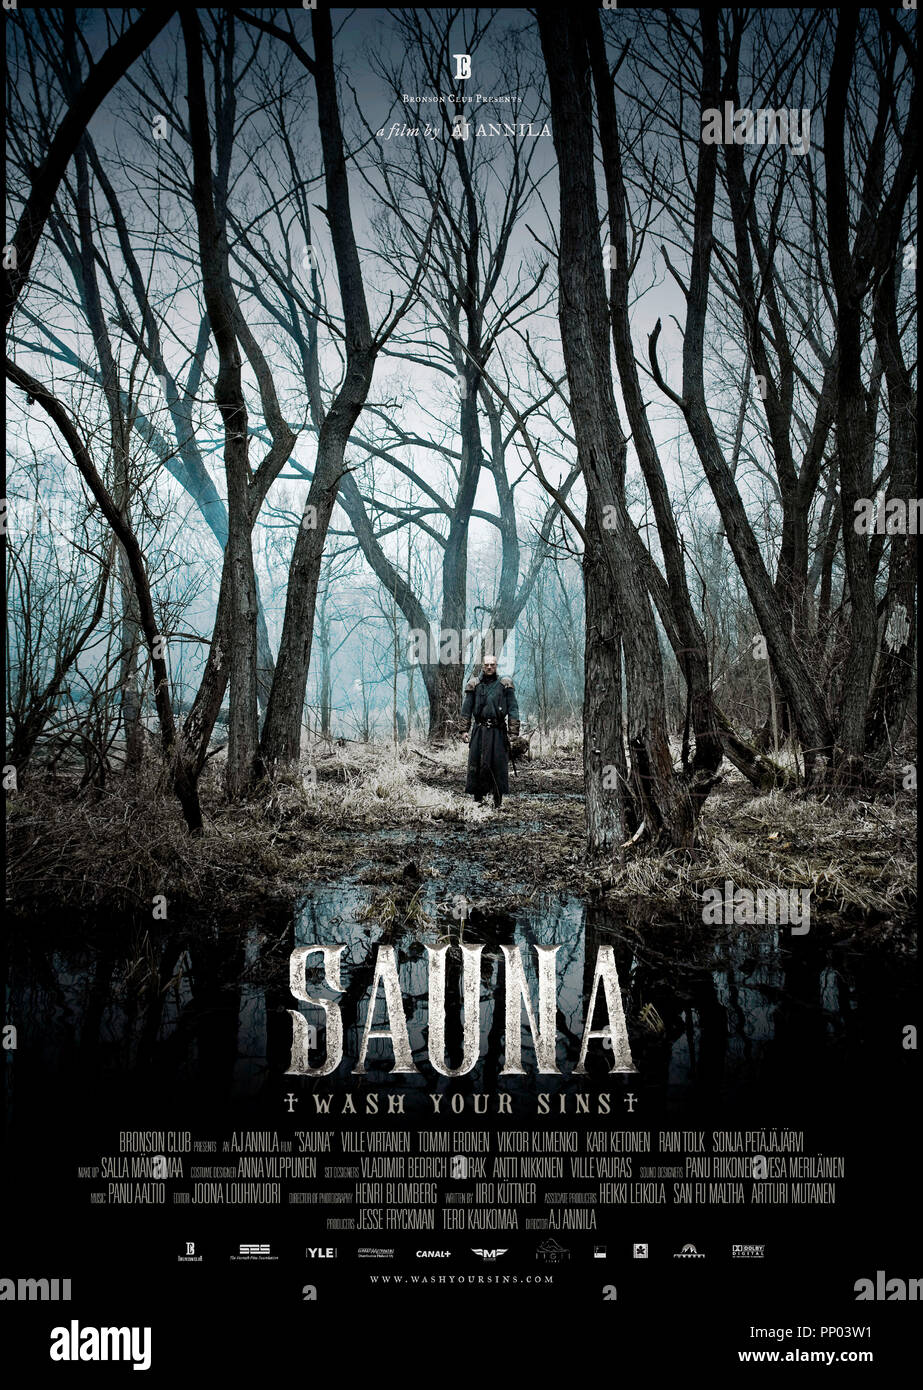 Prod DB © Bronson Club - Etic Pictures - Yleisradio / DR SAUNA de Antti-Jussi Annila 2008 FINL. affiche anglaise - Stock Image